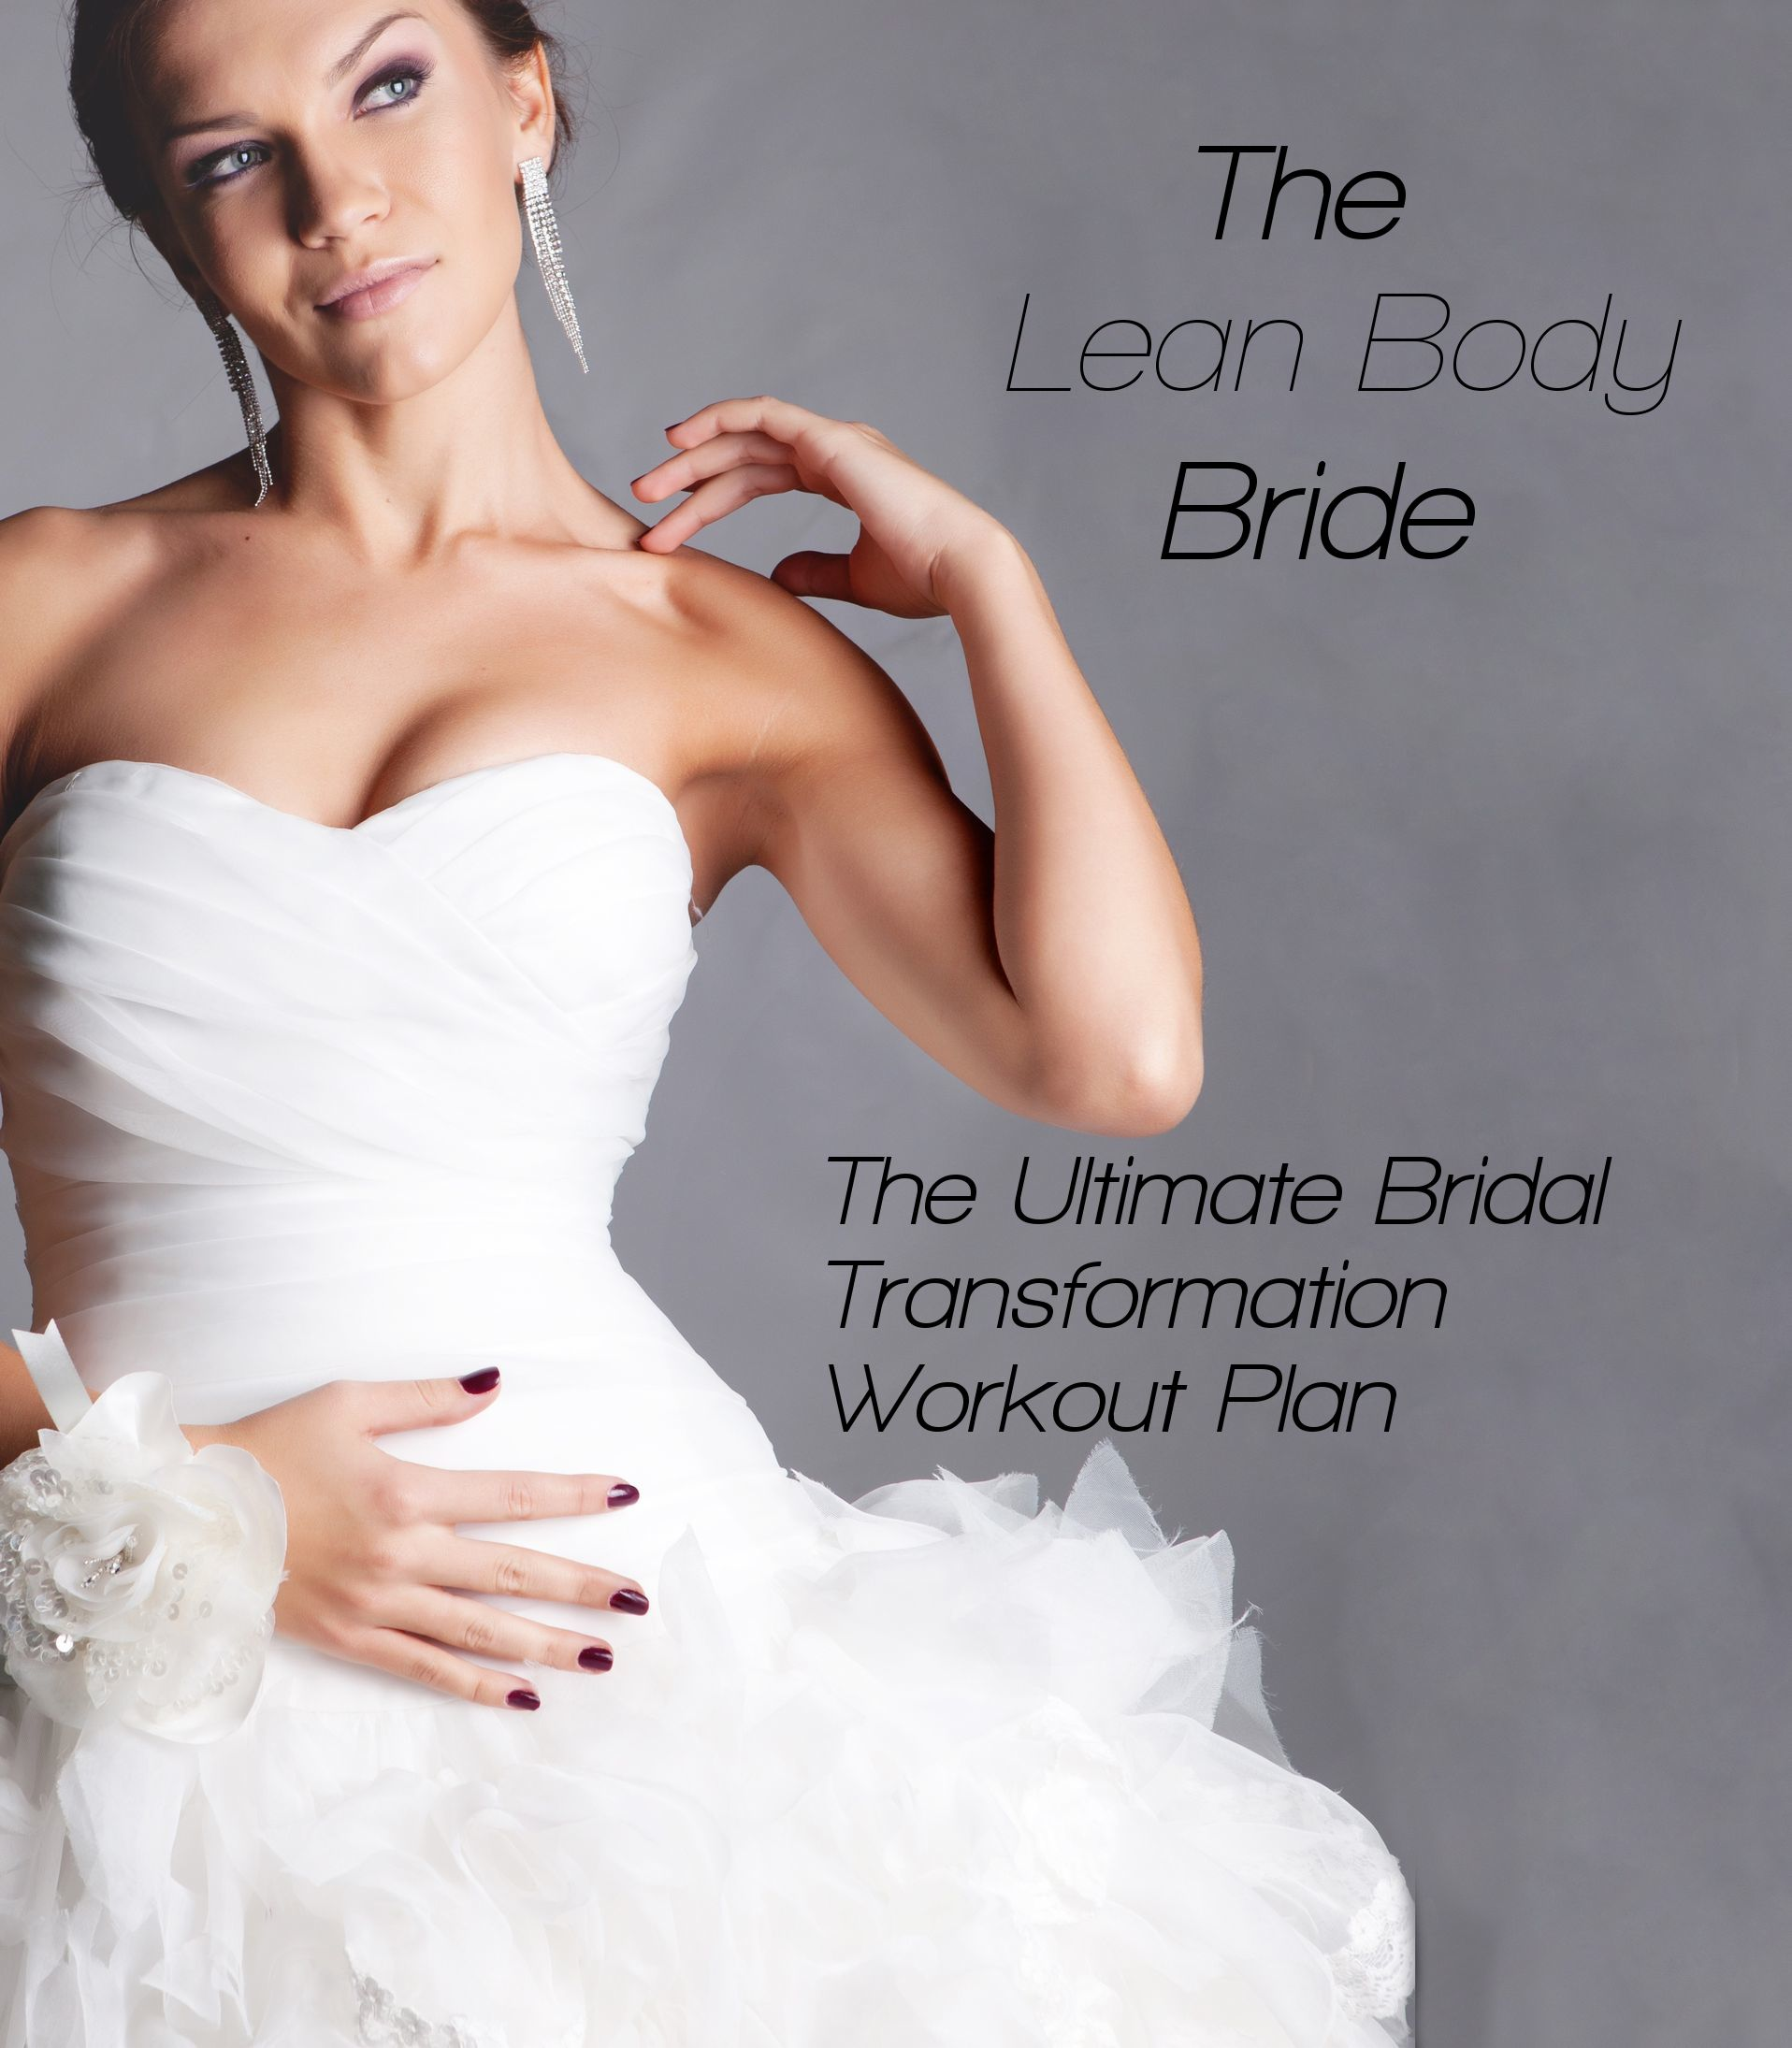 The Ultimate Bridal Transformation Workout Plan Most Effective Pre Wedding Ever Created Start Now At Theleanbodybride